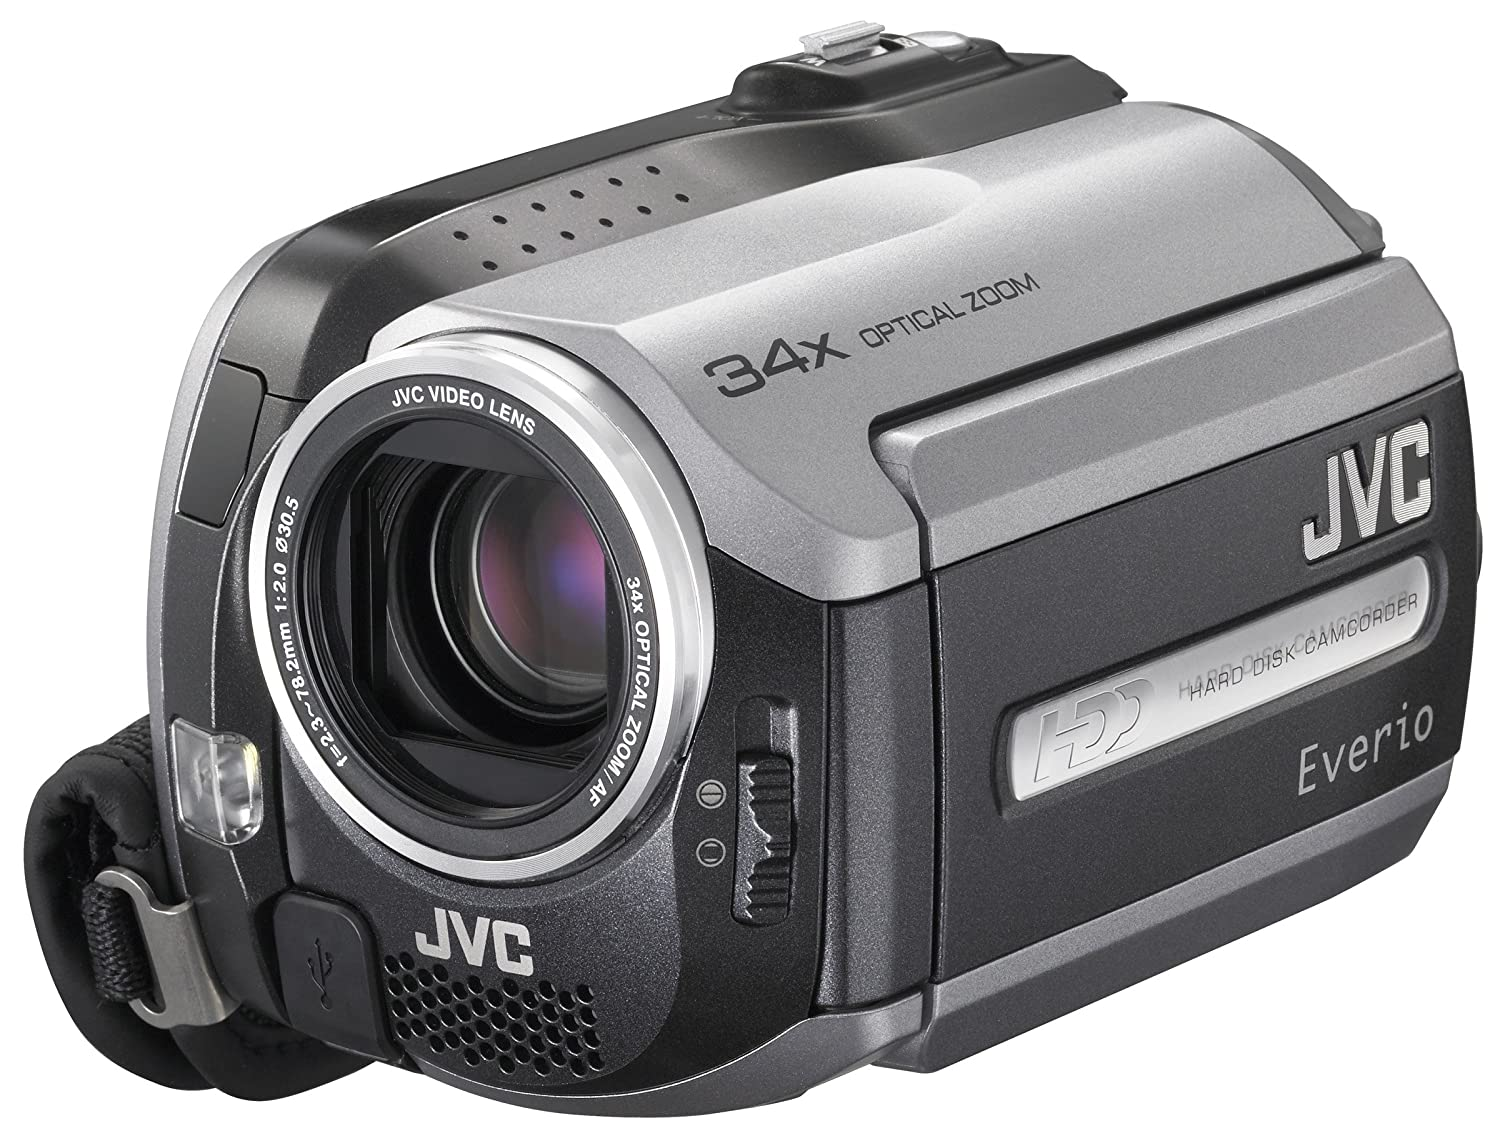 jvc everio gz mg27u user manual user guide manual that easy to read u2022 rh mobiservicemanual today jvc digital video camera instruction manual jvc compact vhs camcorder instructions manual